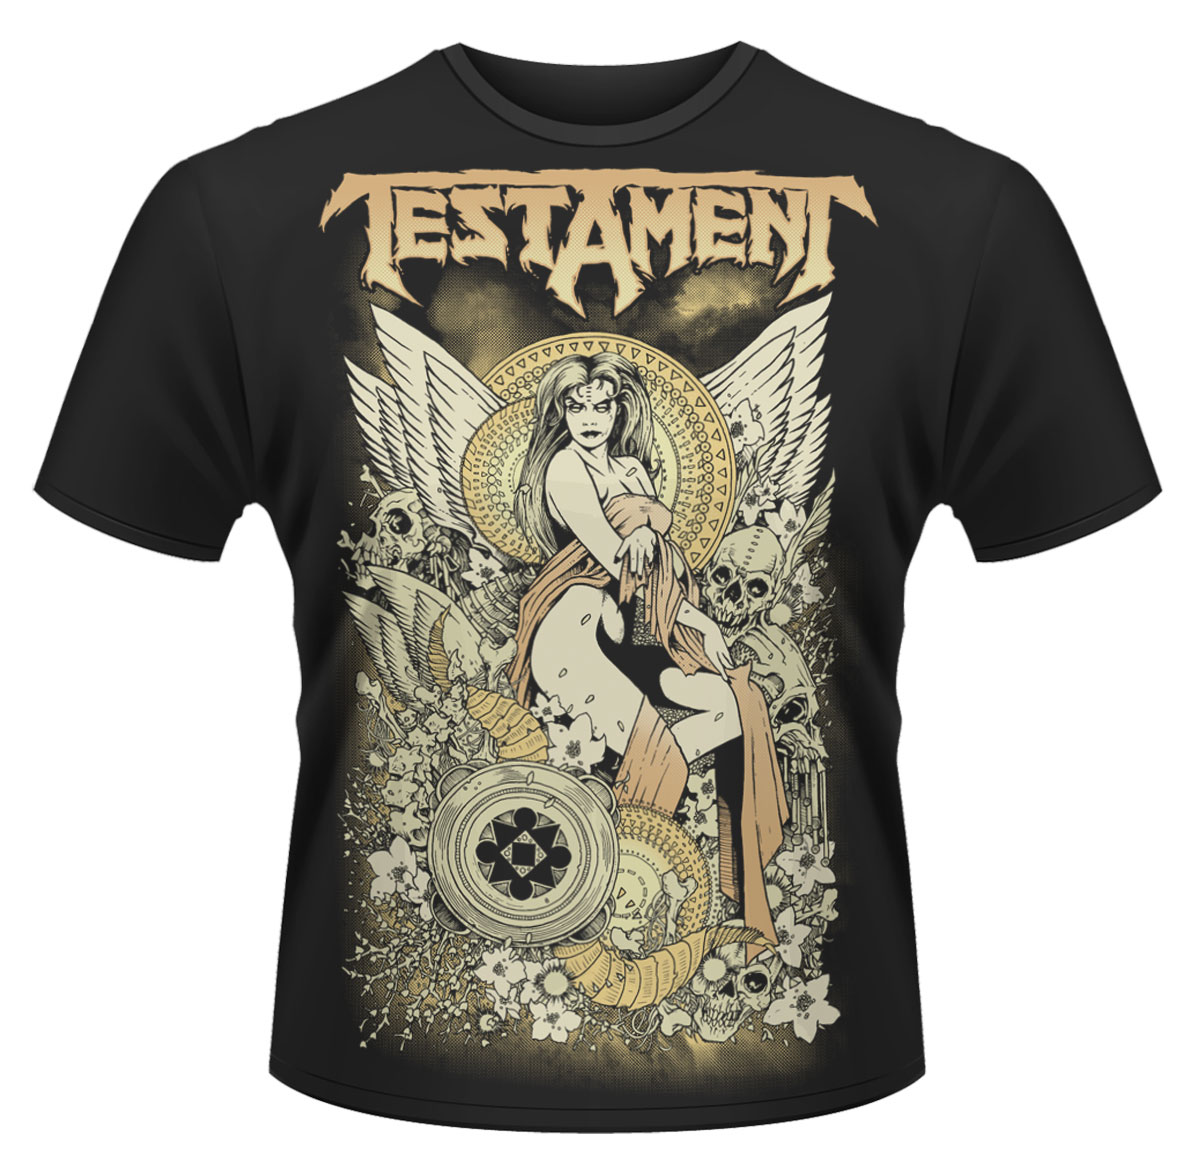 Testament 'Maiden' T-Shirt